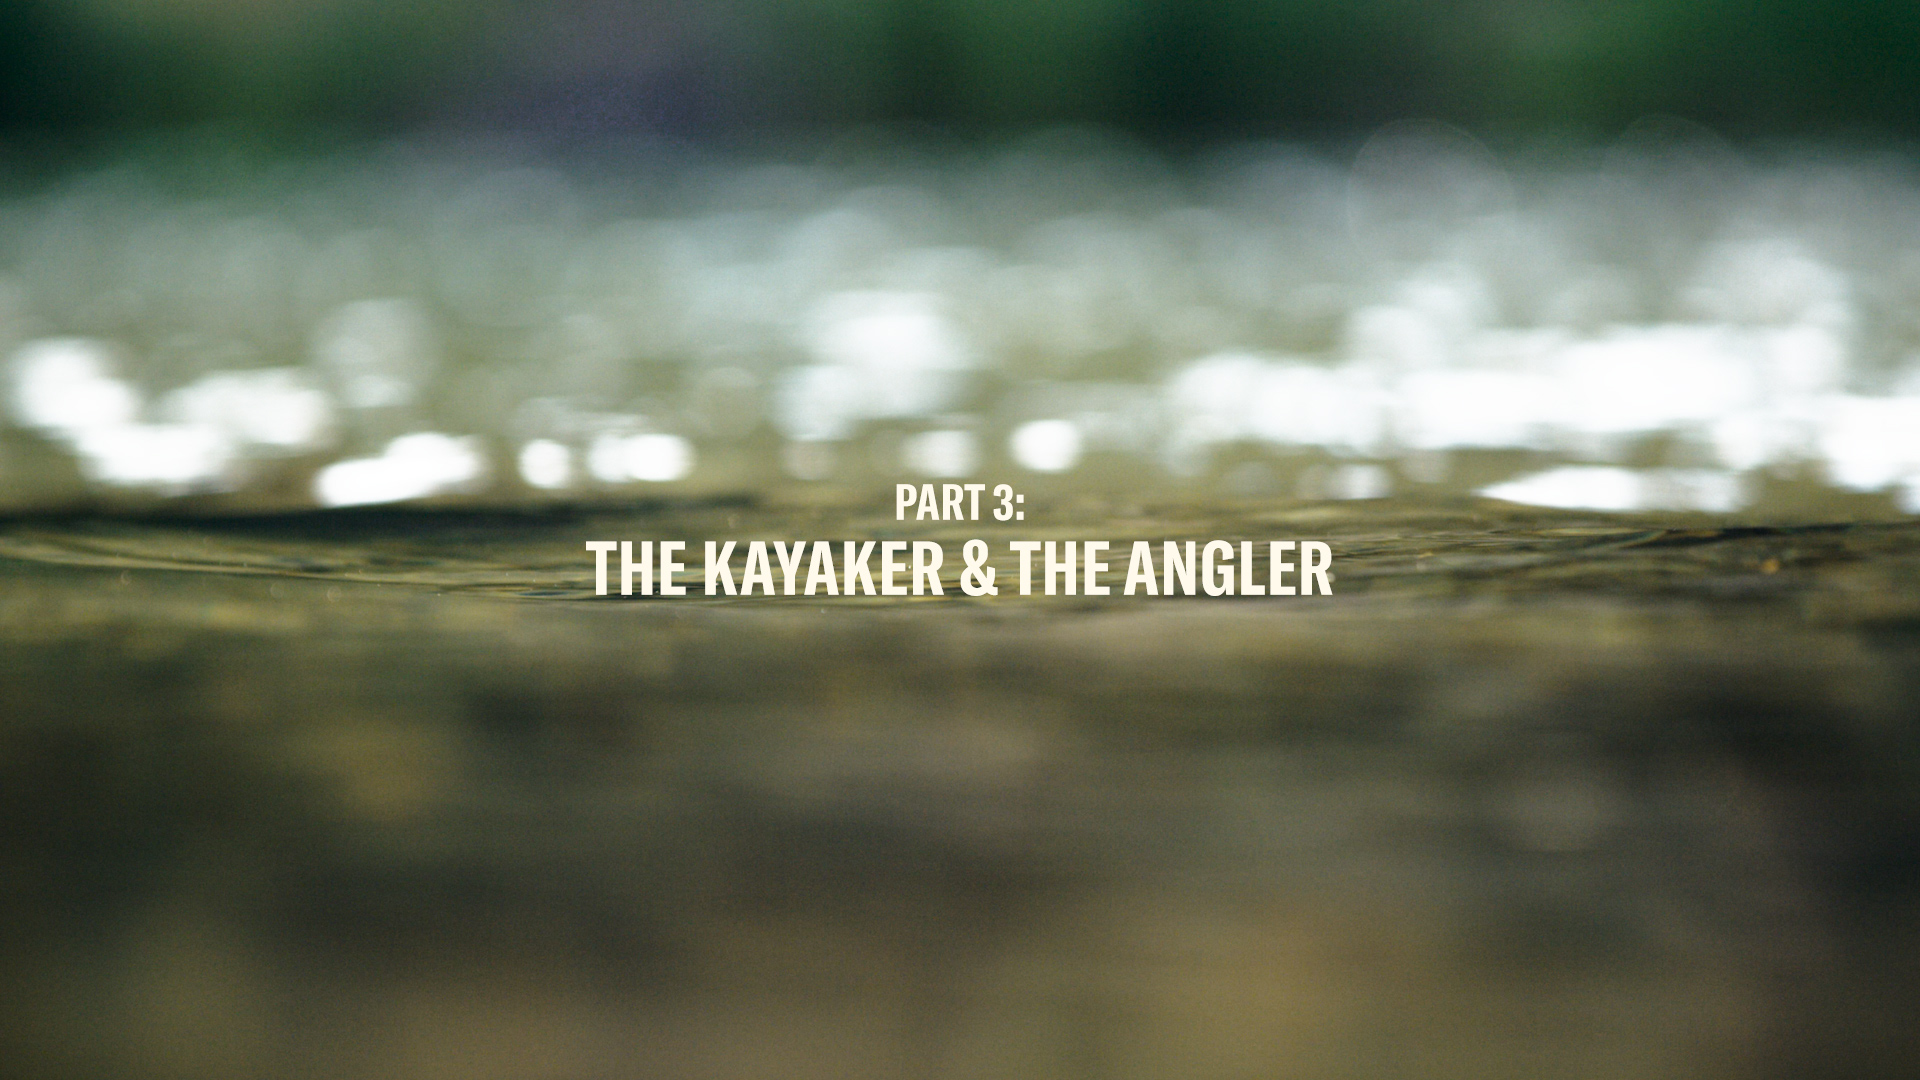 THE KAYAKER & THE ANGLER